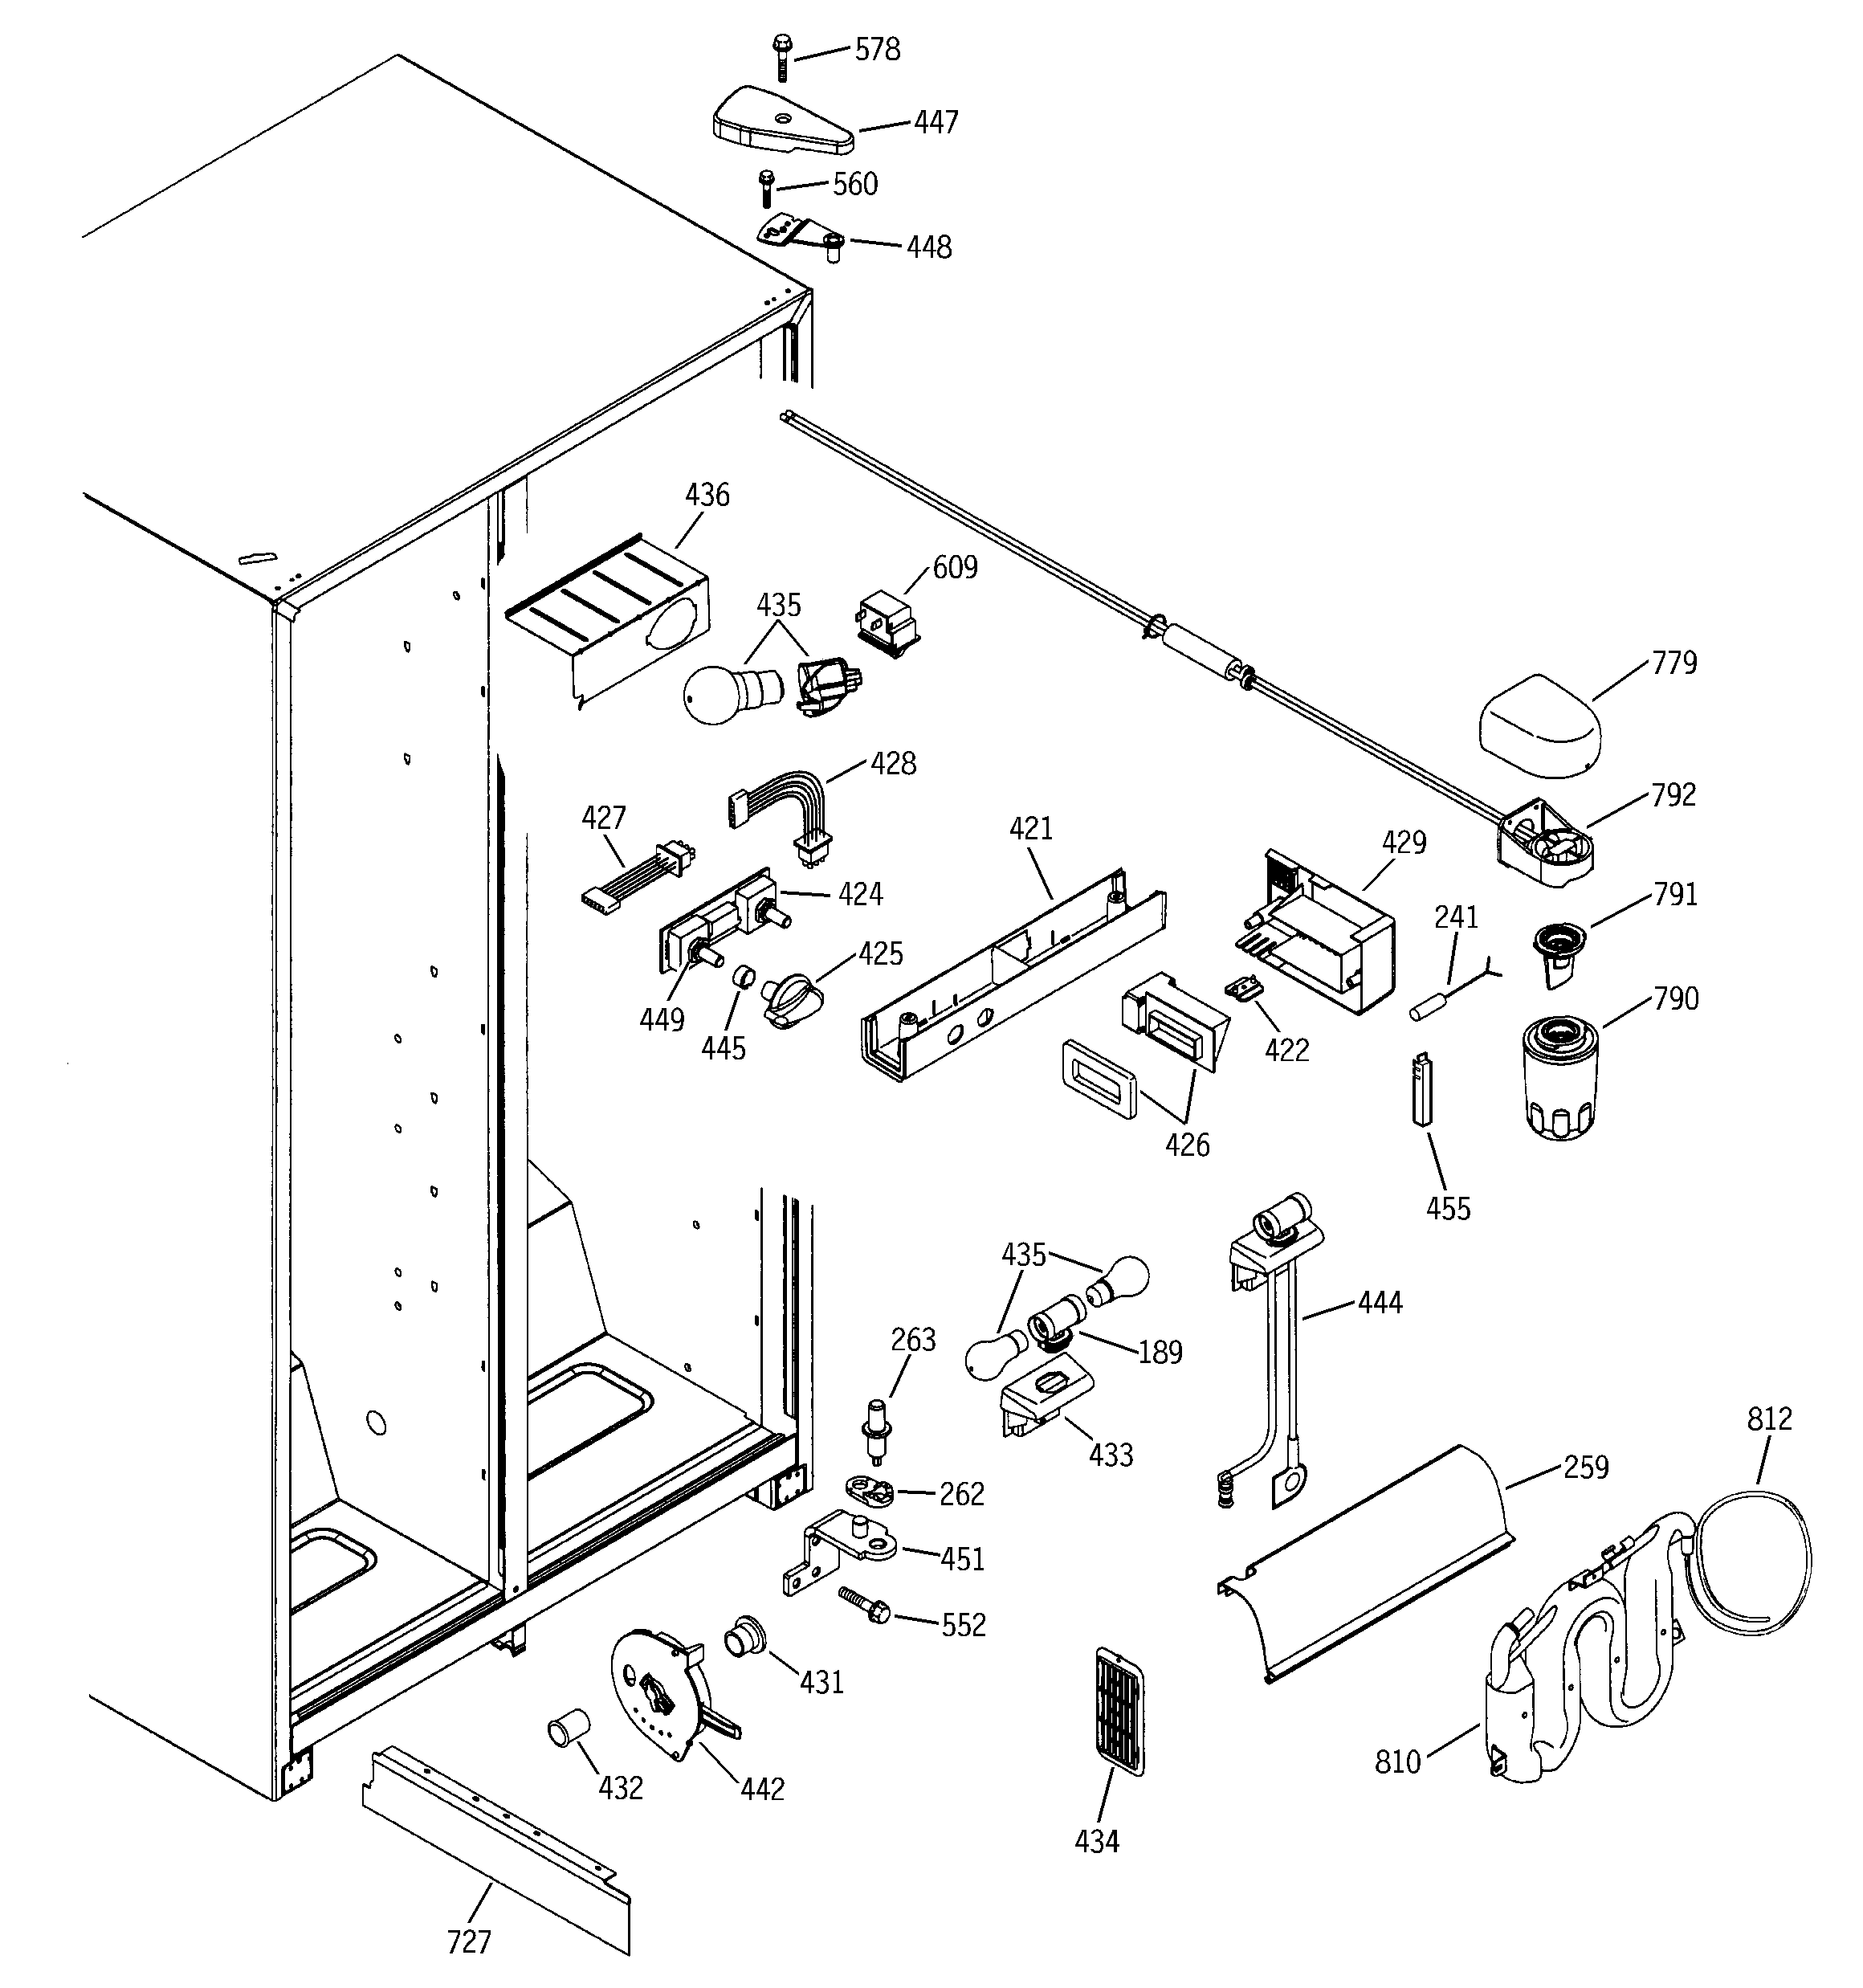 FRESH FOOD SECTION Diagram & Parts List for Model